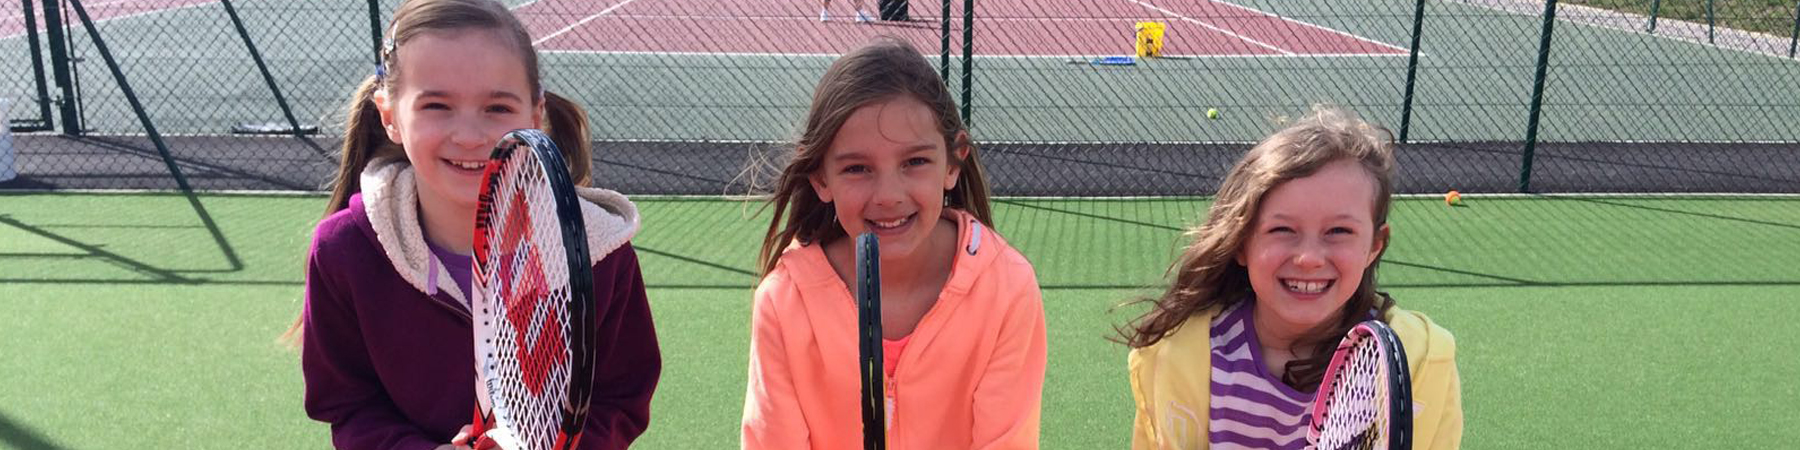 Tennis For Kids Taster